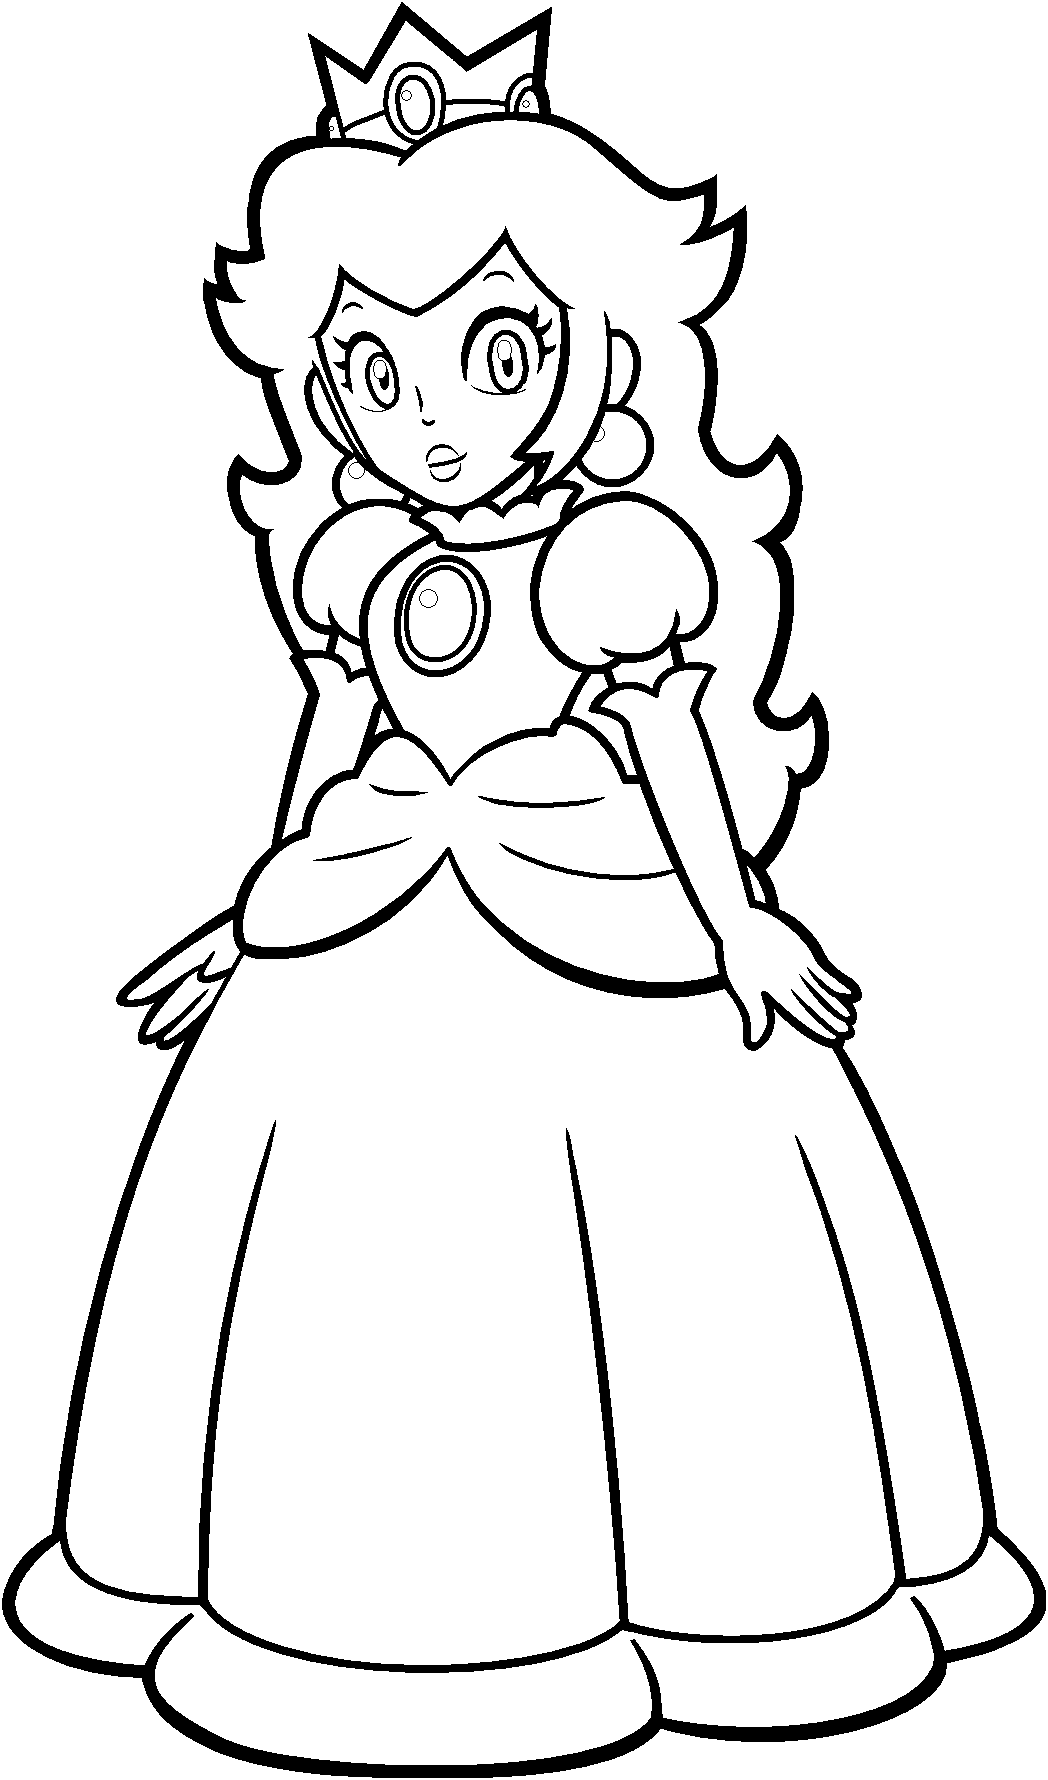 Pin By Ari Martinez On Coloriages Super Mario Mario Coloring Pages Super Mario Coloring Pages Mario And Princess Peach